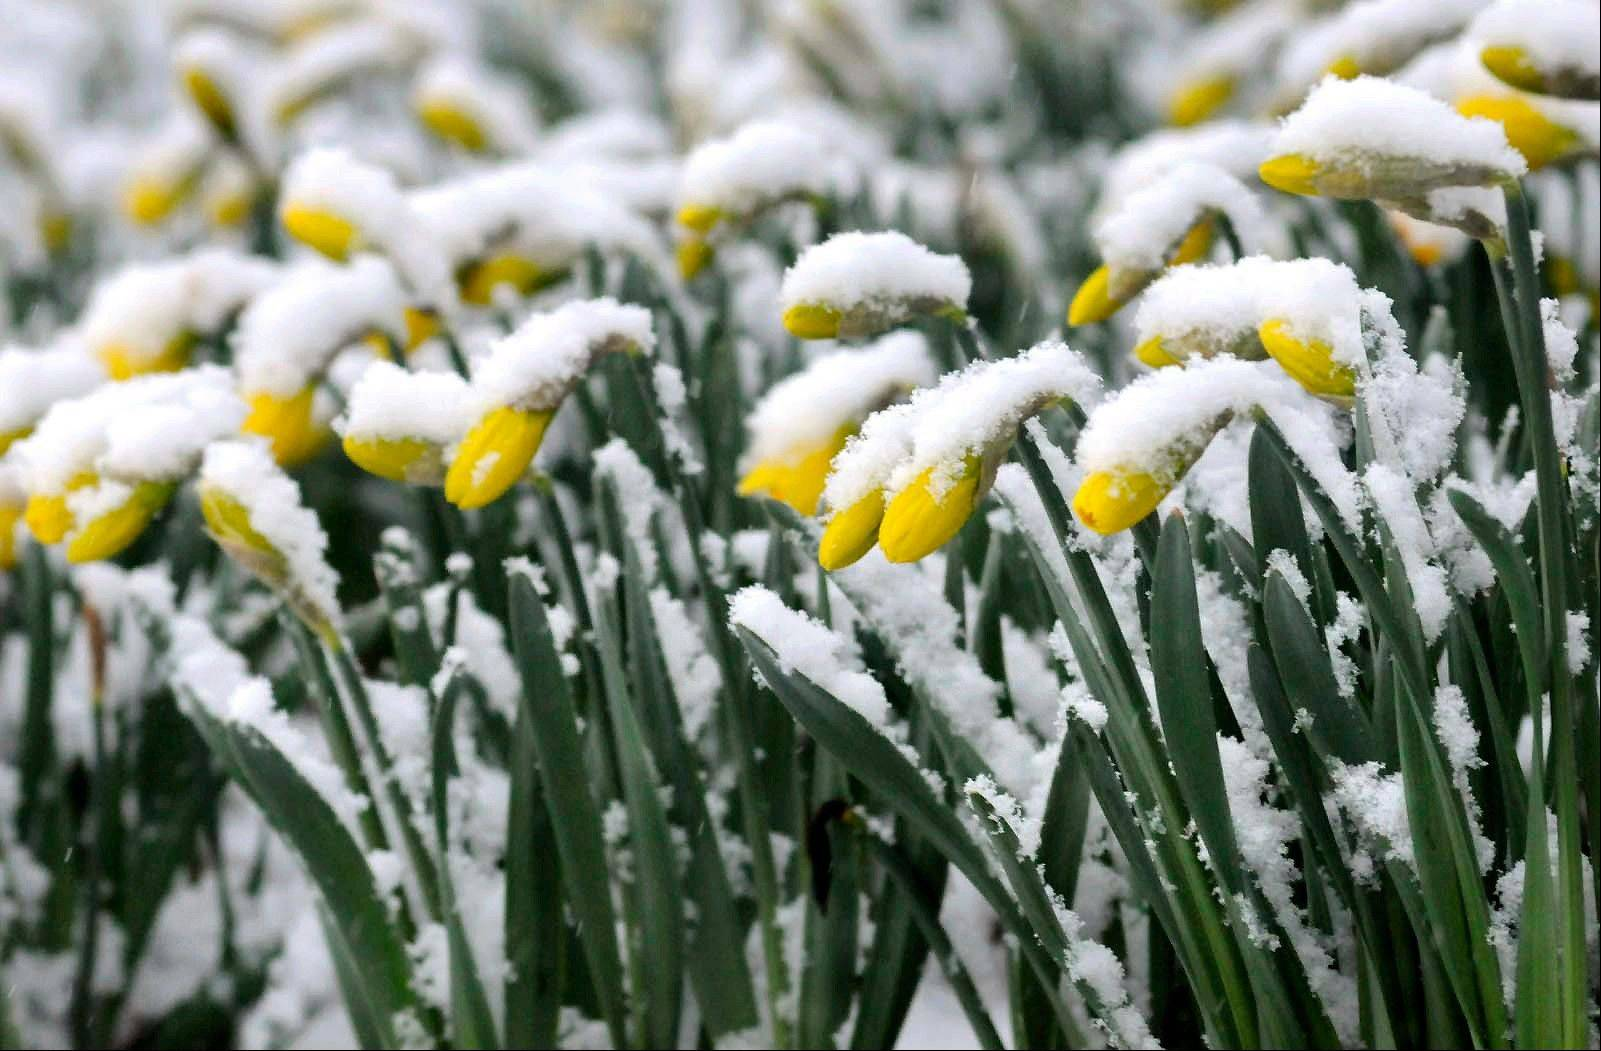 Daffodils are covered with wet spring snow in Lancaster, Pa., Monday morning, March 25, 2013 as a storm stretching from the Midwest to the East Coast is burying thoughts of springtime weather under a blanket of heavy wet snow and slush.